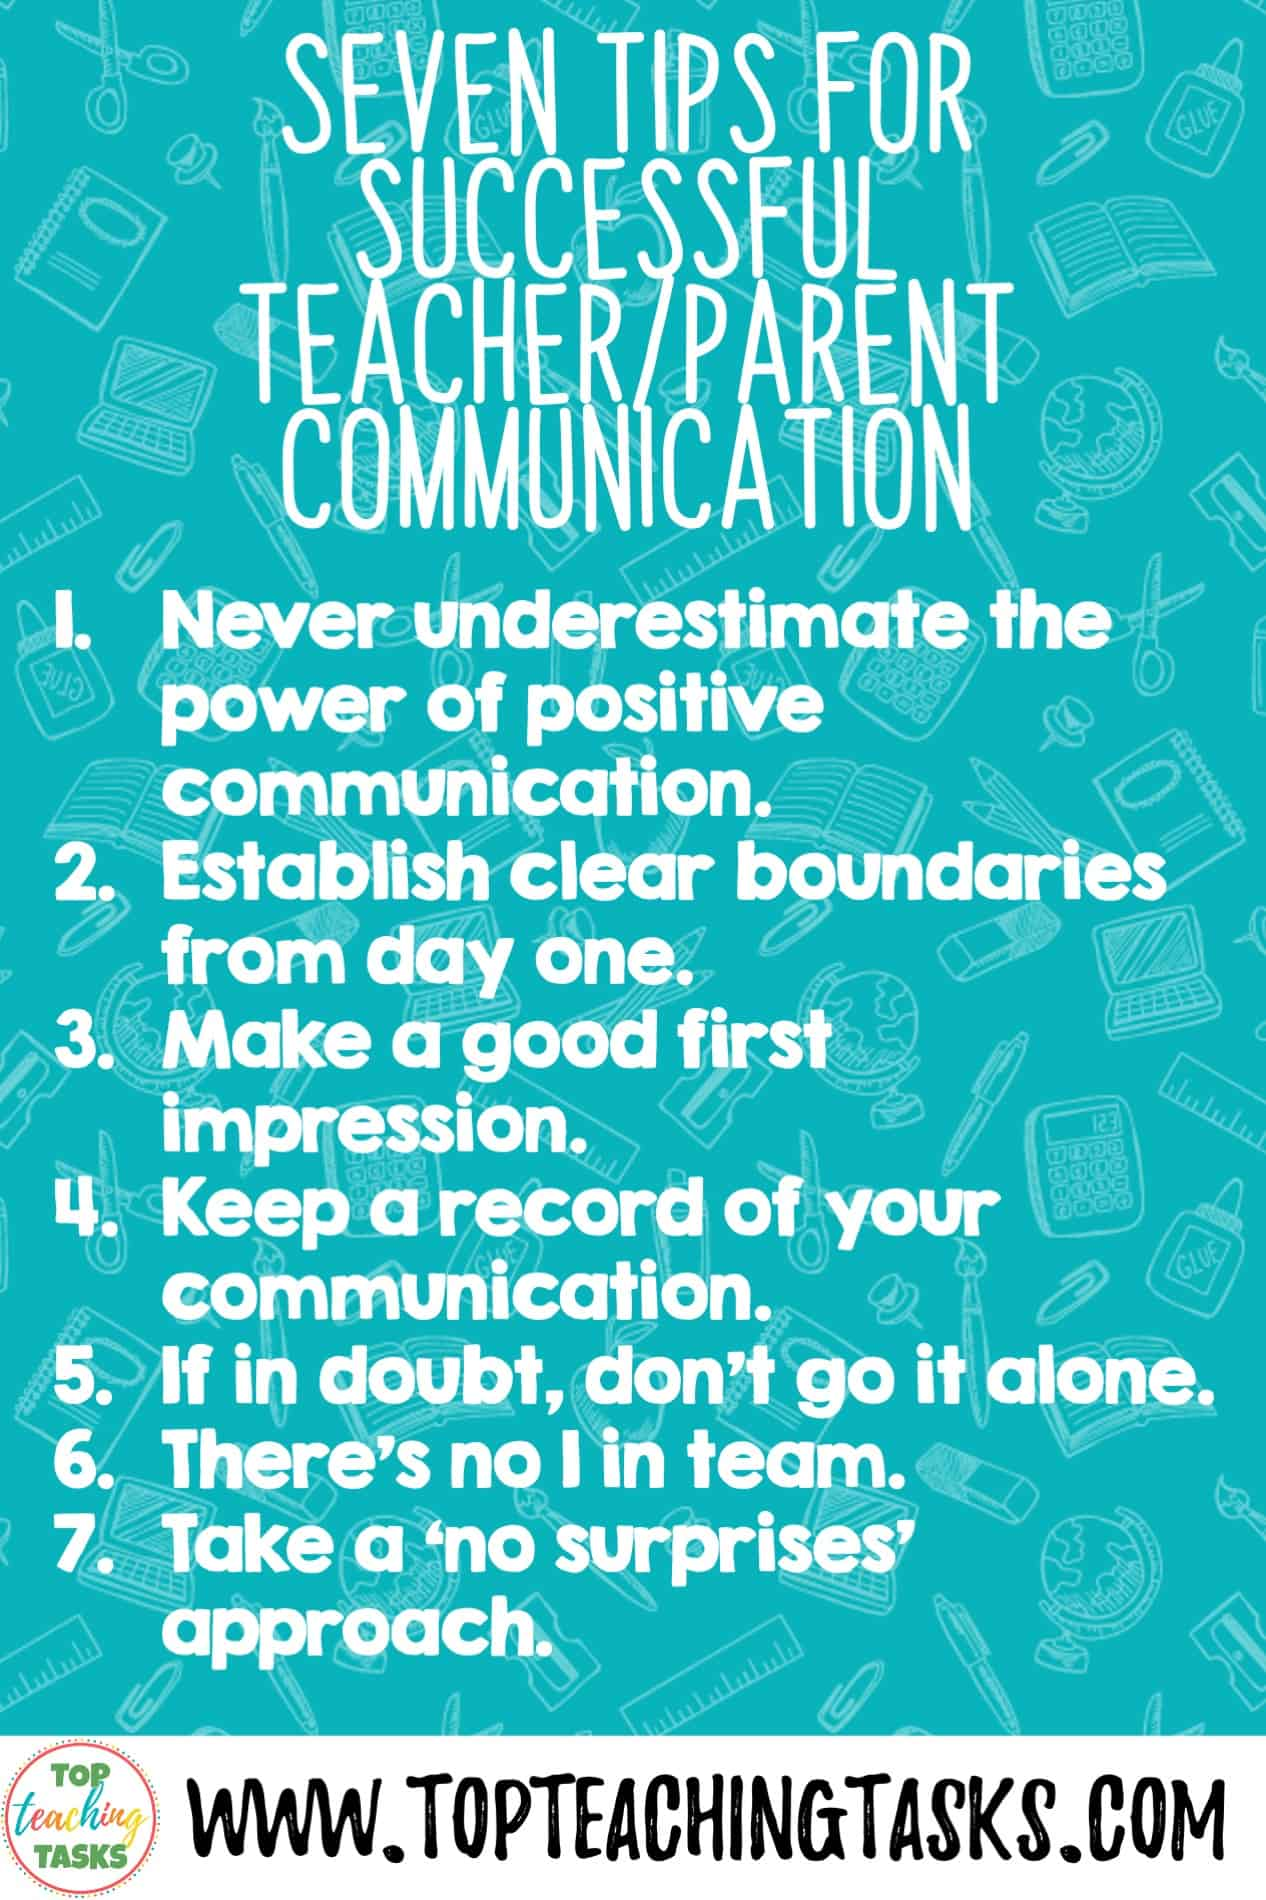 7 Tips for Successful Parent-Teacher Communication. When I surveyed trainee teachers on topics they would like advice on, the resounding and clear winner was tips for Successful Parent-Teacher Communication. From memory, this topic wasn't something covered when I was going through teacher training. However, there are so many benefits for parents being active in their child's education, and clear communication will help this to occur!